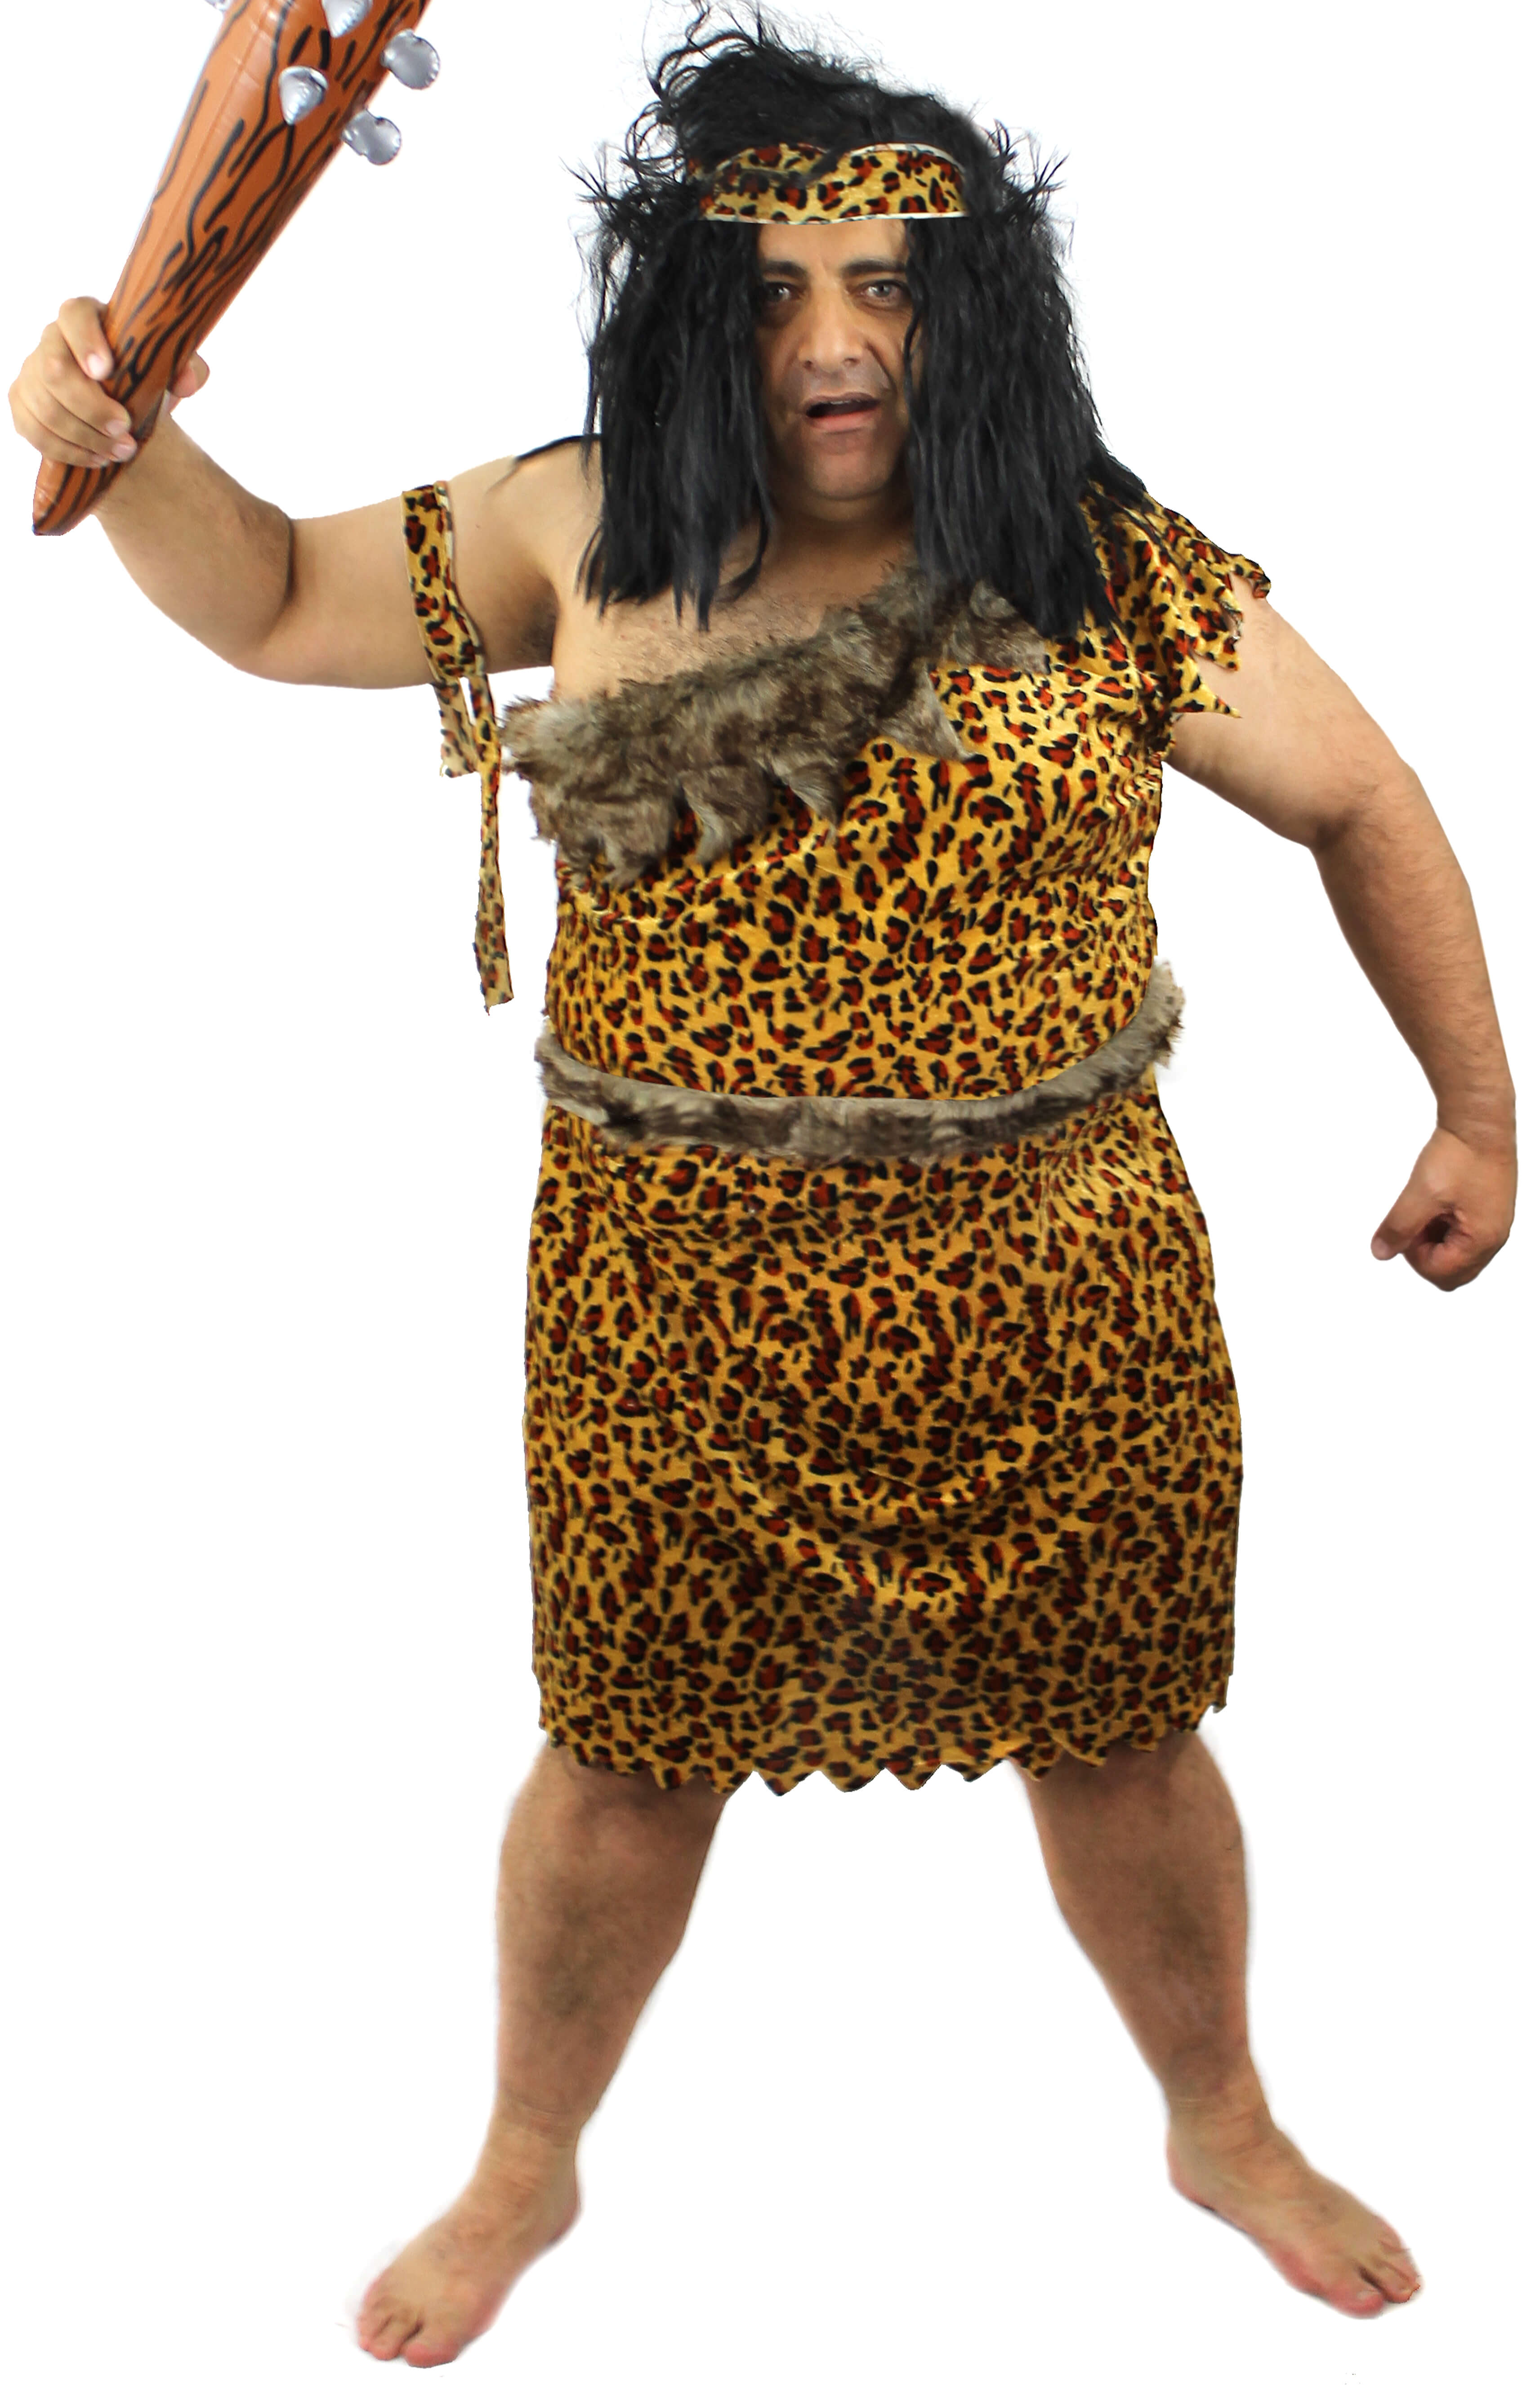 21 best Caveman Costumes images on Pinterest | Caveman ... |Caveman Costume Hair